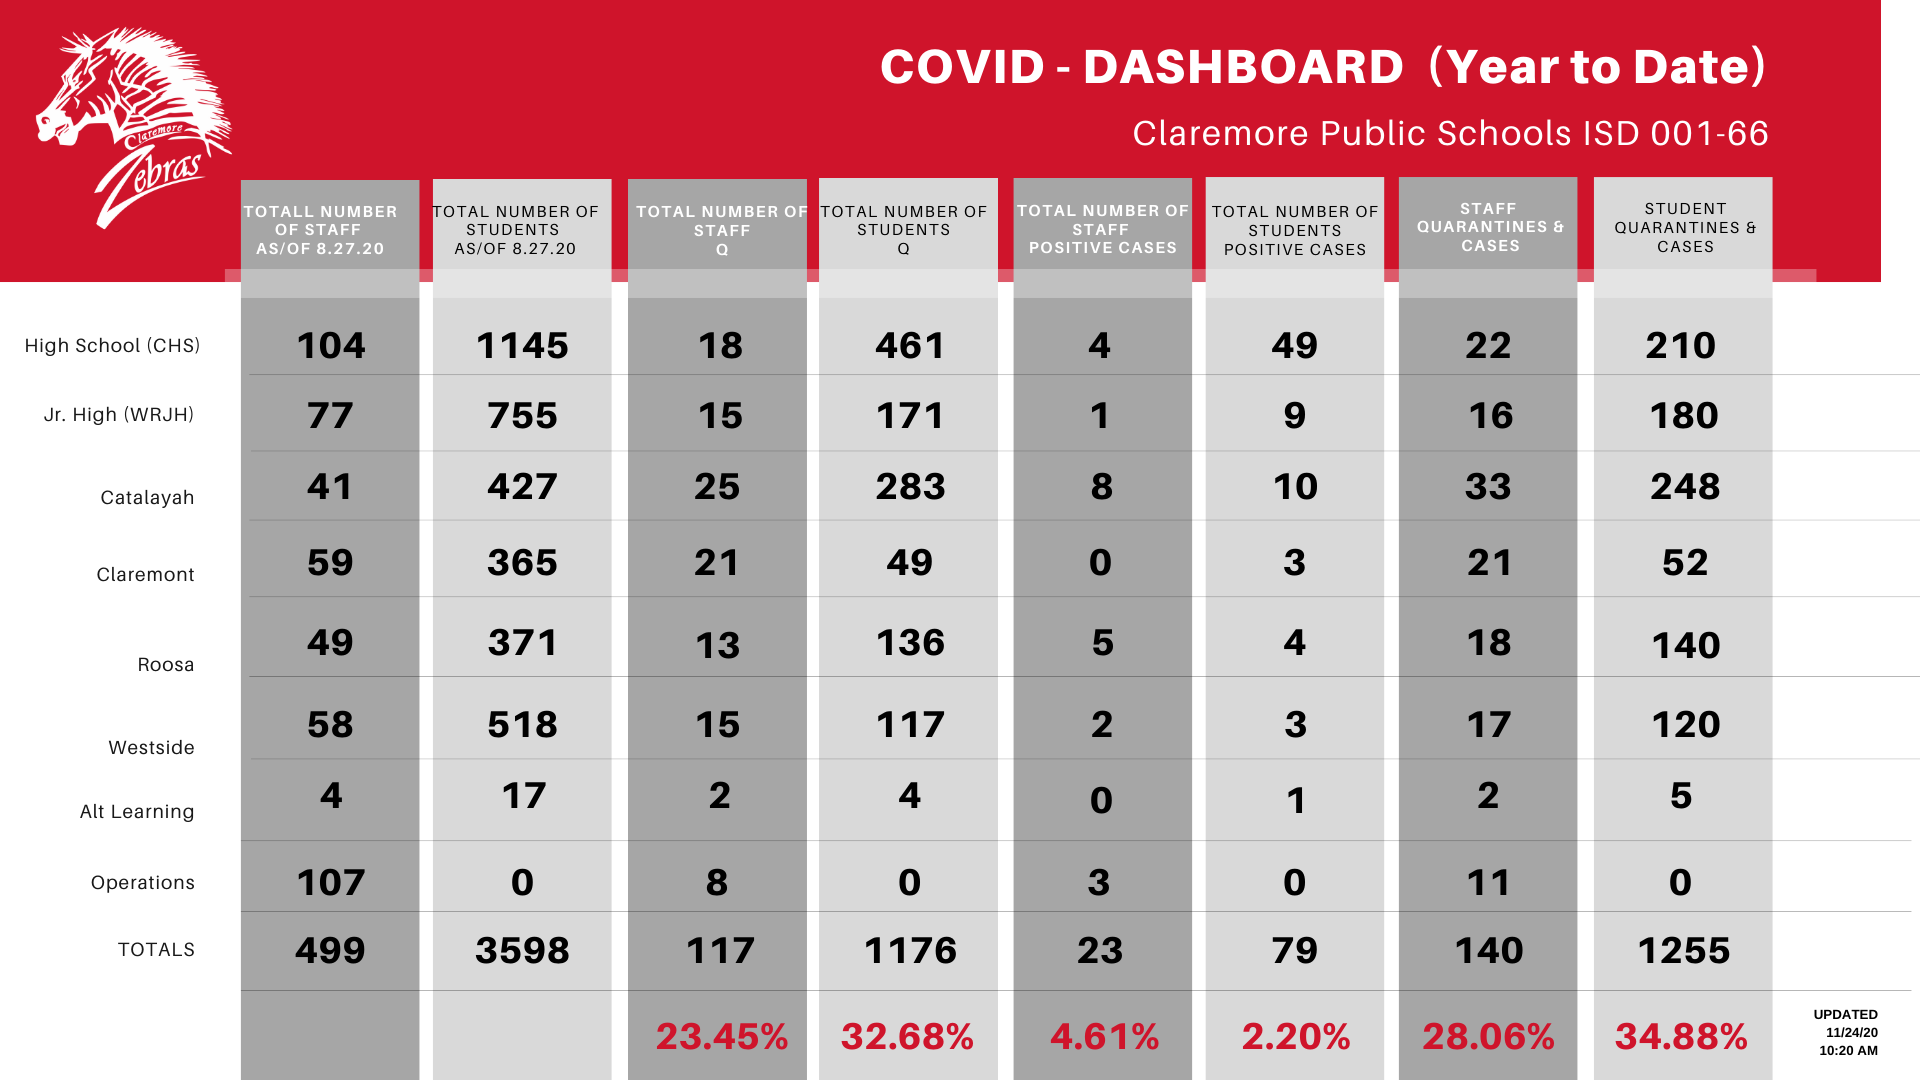 COVID DASHBOARD (Year to Date)